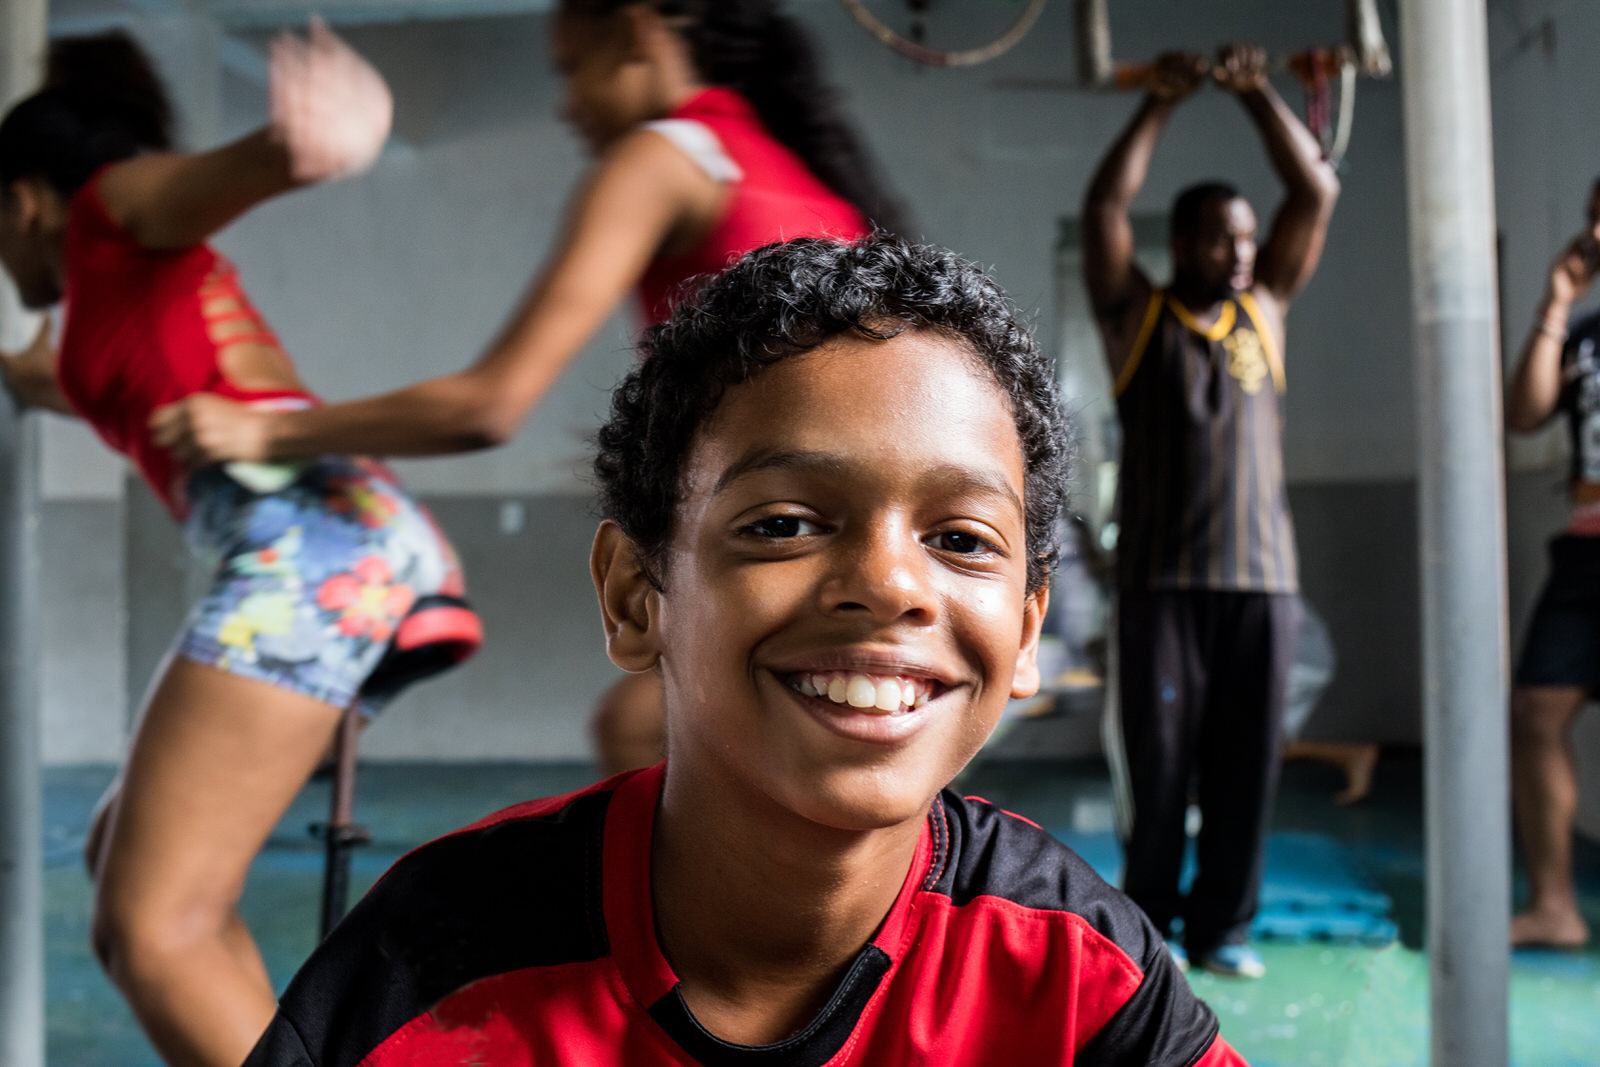 The Arte Consciente initiative complements the education of youth, providing information about Salvador's Afro-Brazilian cullture and identity.